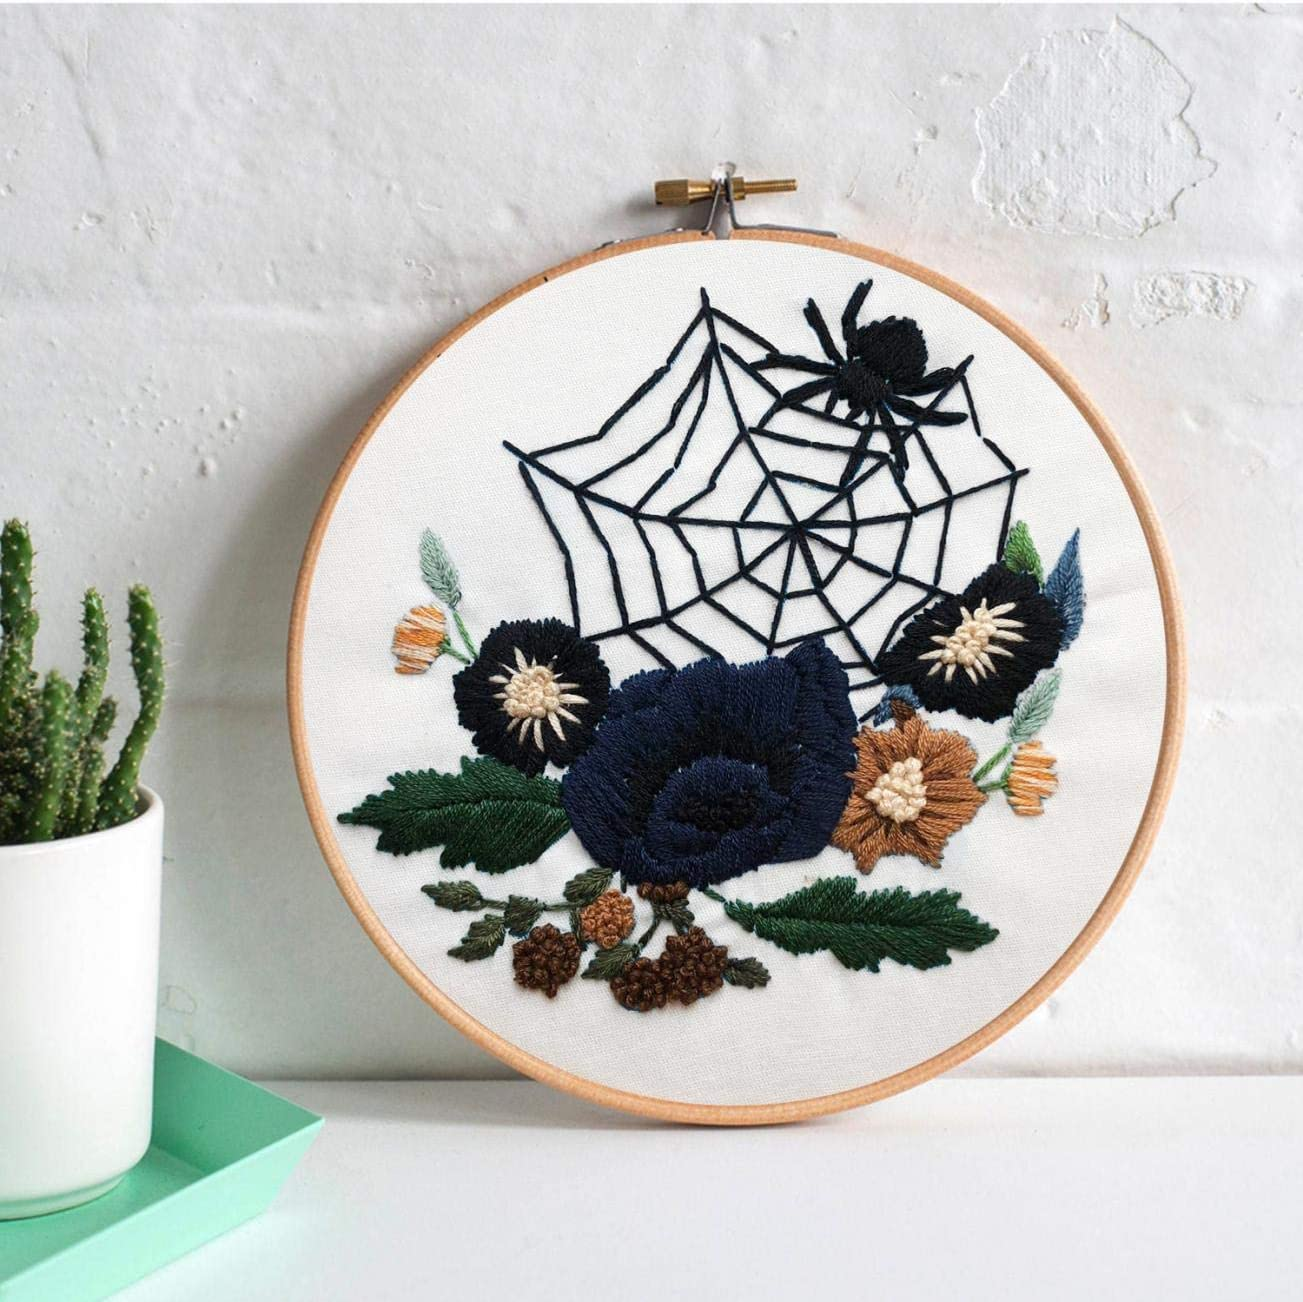 Nuberlic Halloween Embroidery Kit Adults Cross Stitch Kit for Beginners Crafts Stamped Pattern Hand Embroidery Hoops Floss Thread Needles